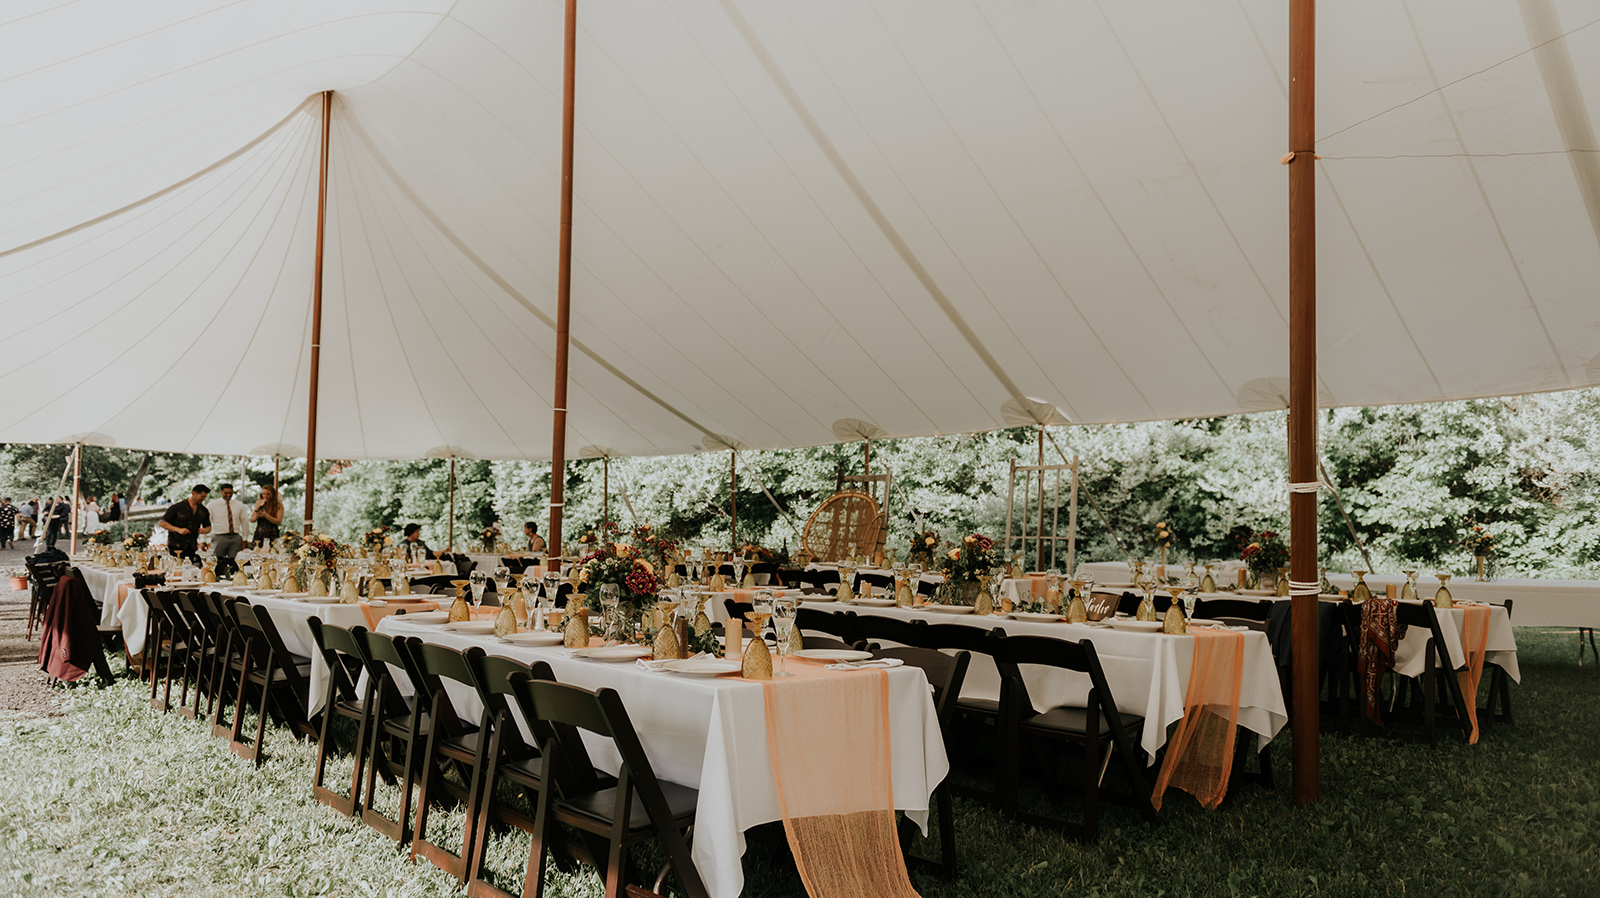 Tented wedding reception in Massachusetts - Pearl Weddings & Events